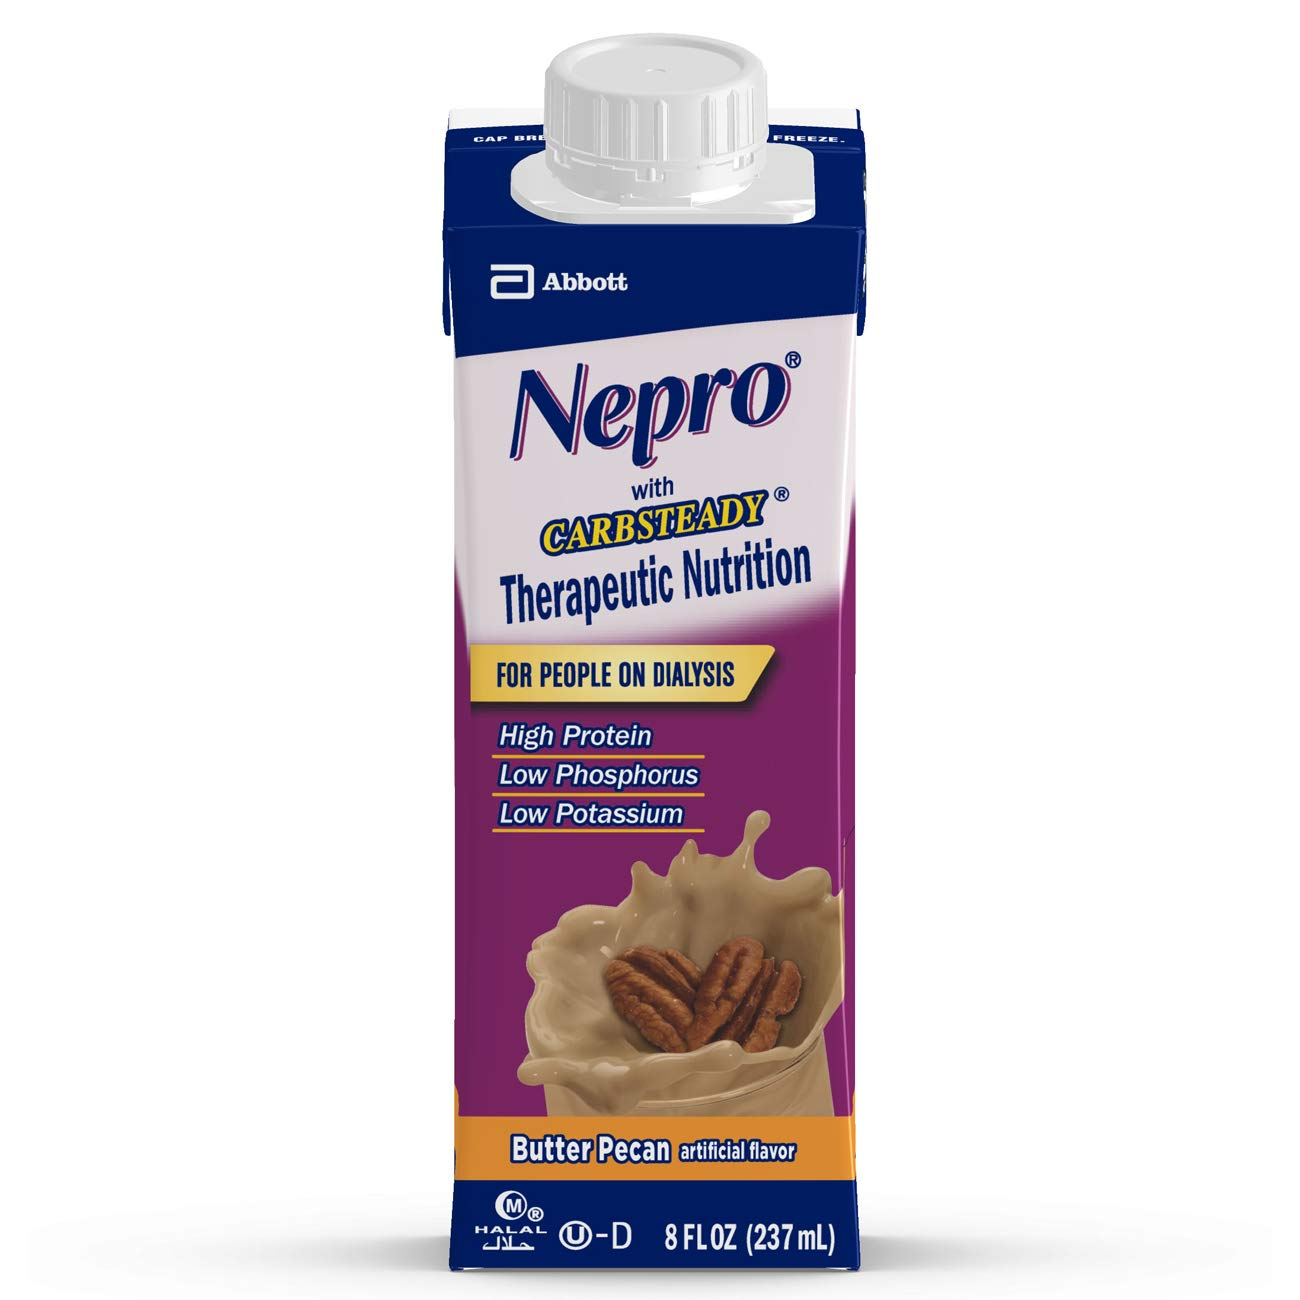 Nepro Therapeutic Nutrition Shake with 19 grams of protein, Nutrition for people on Dialysis, Butter Pecan, 8 fl ounces, (Pack of 24) by Nepro